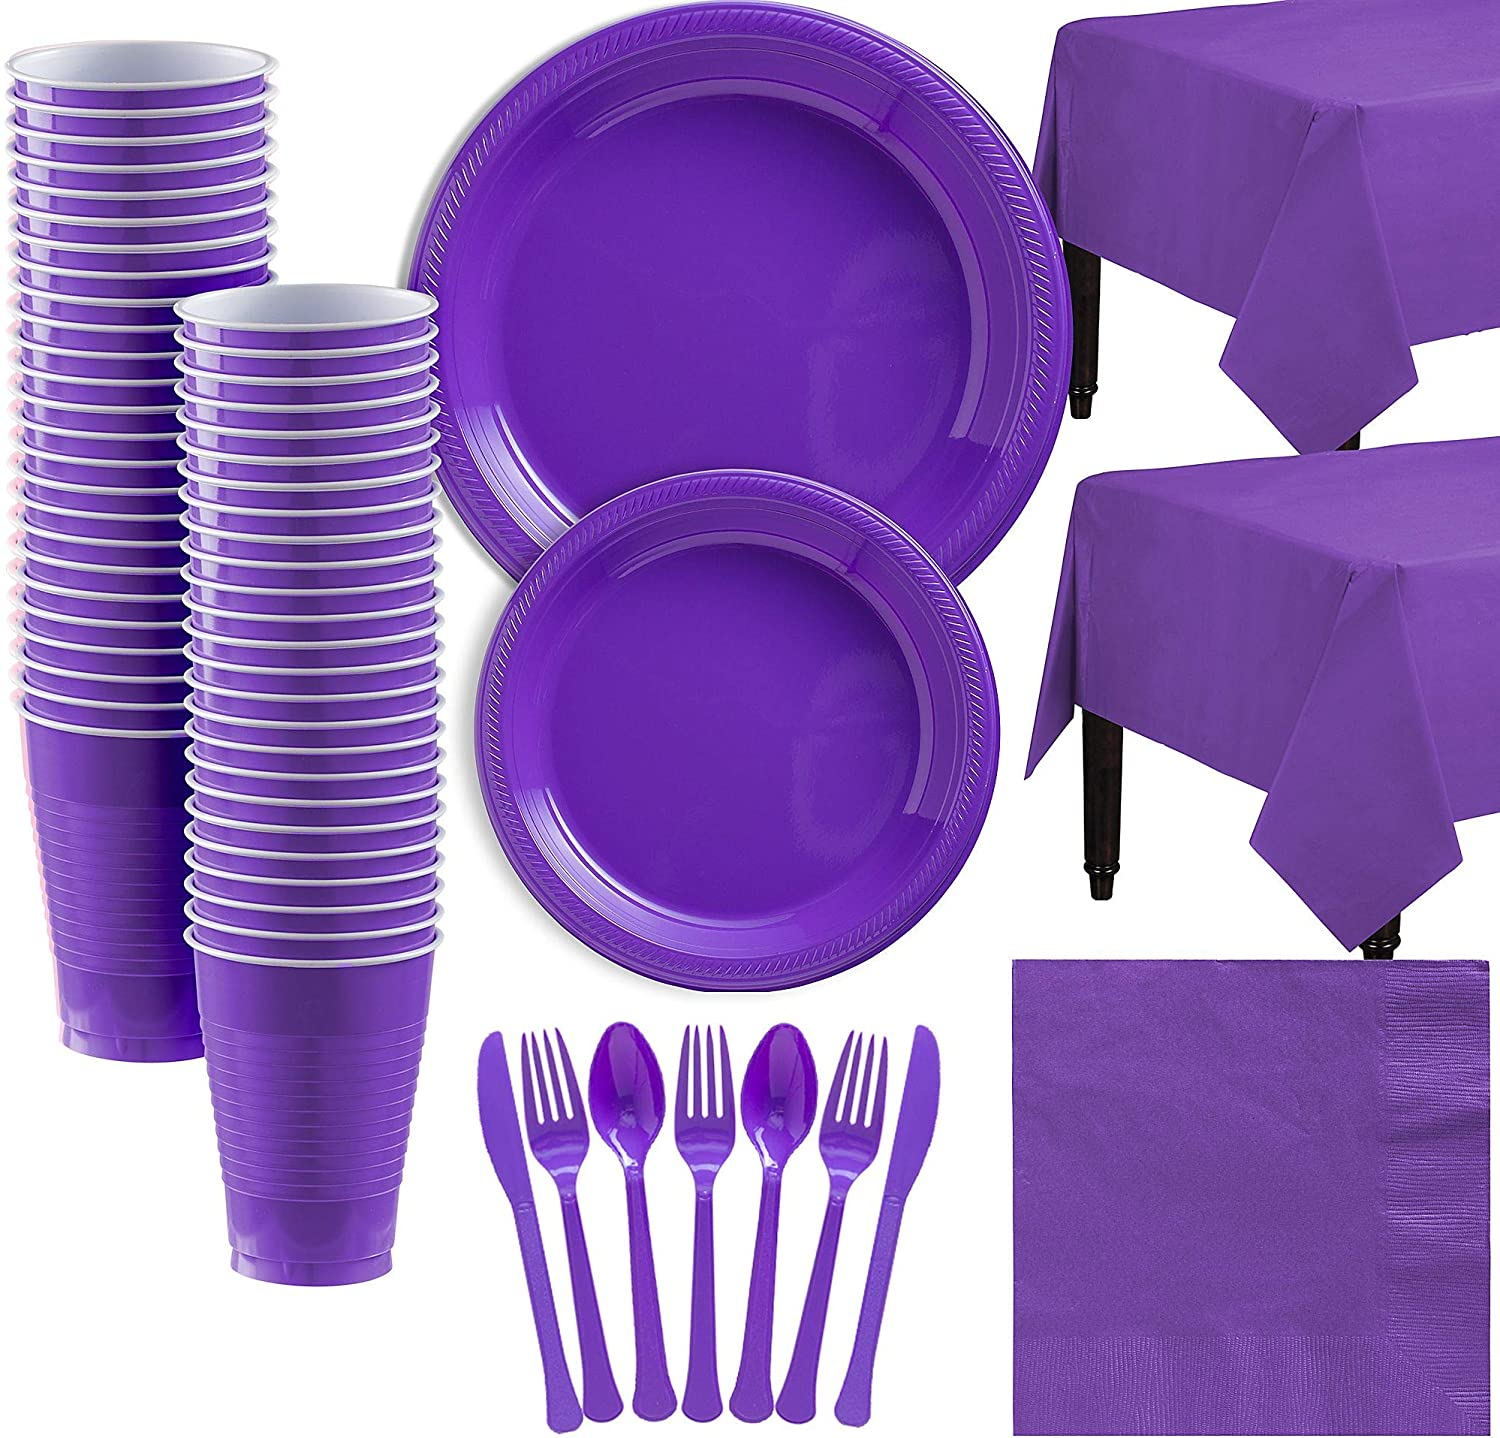 Amscan Purple Plastic Tableware Kit for 50 Guests, Party Supplies, Includes Table Covers, Plates, Cups and More